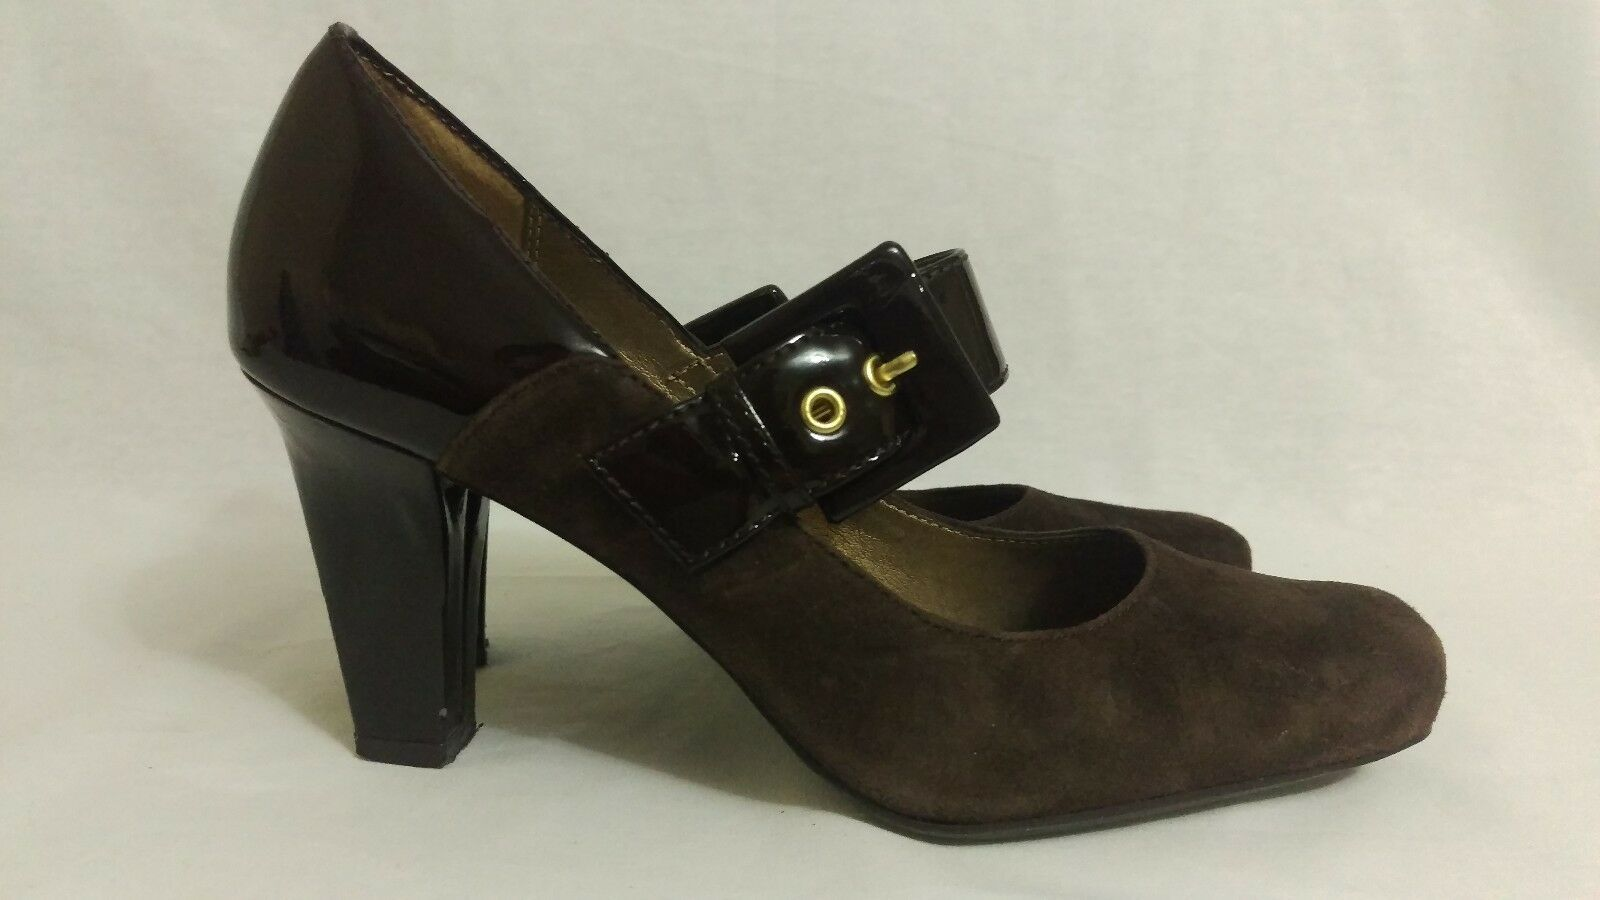 Franco Sarto Women's Brown Shoes size 6M heels image 4